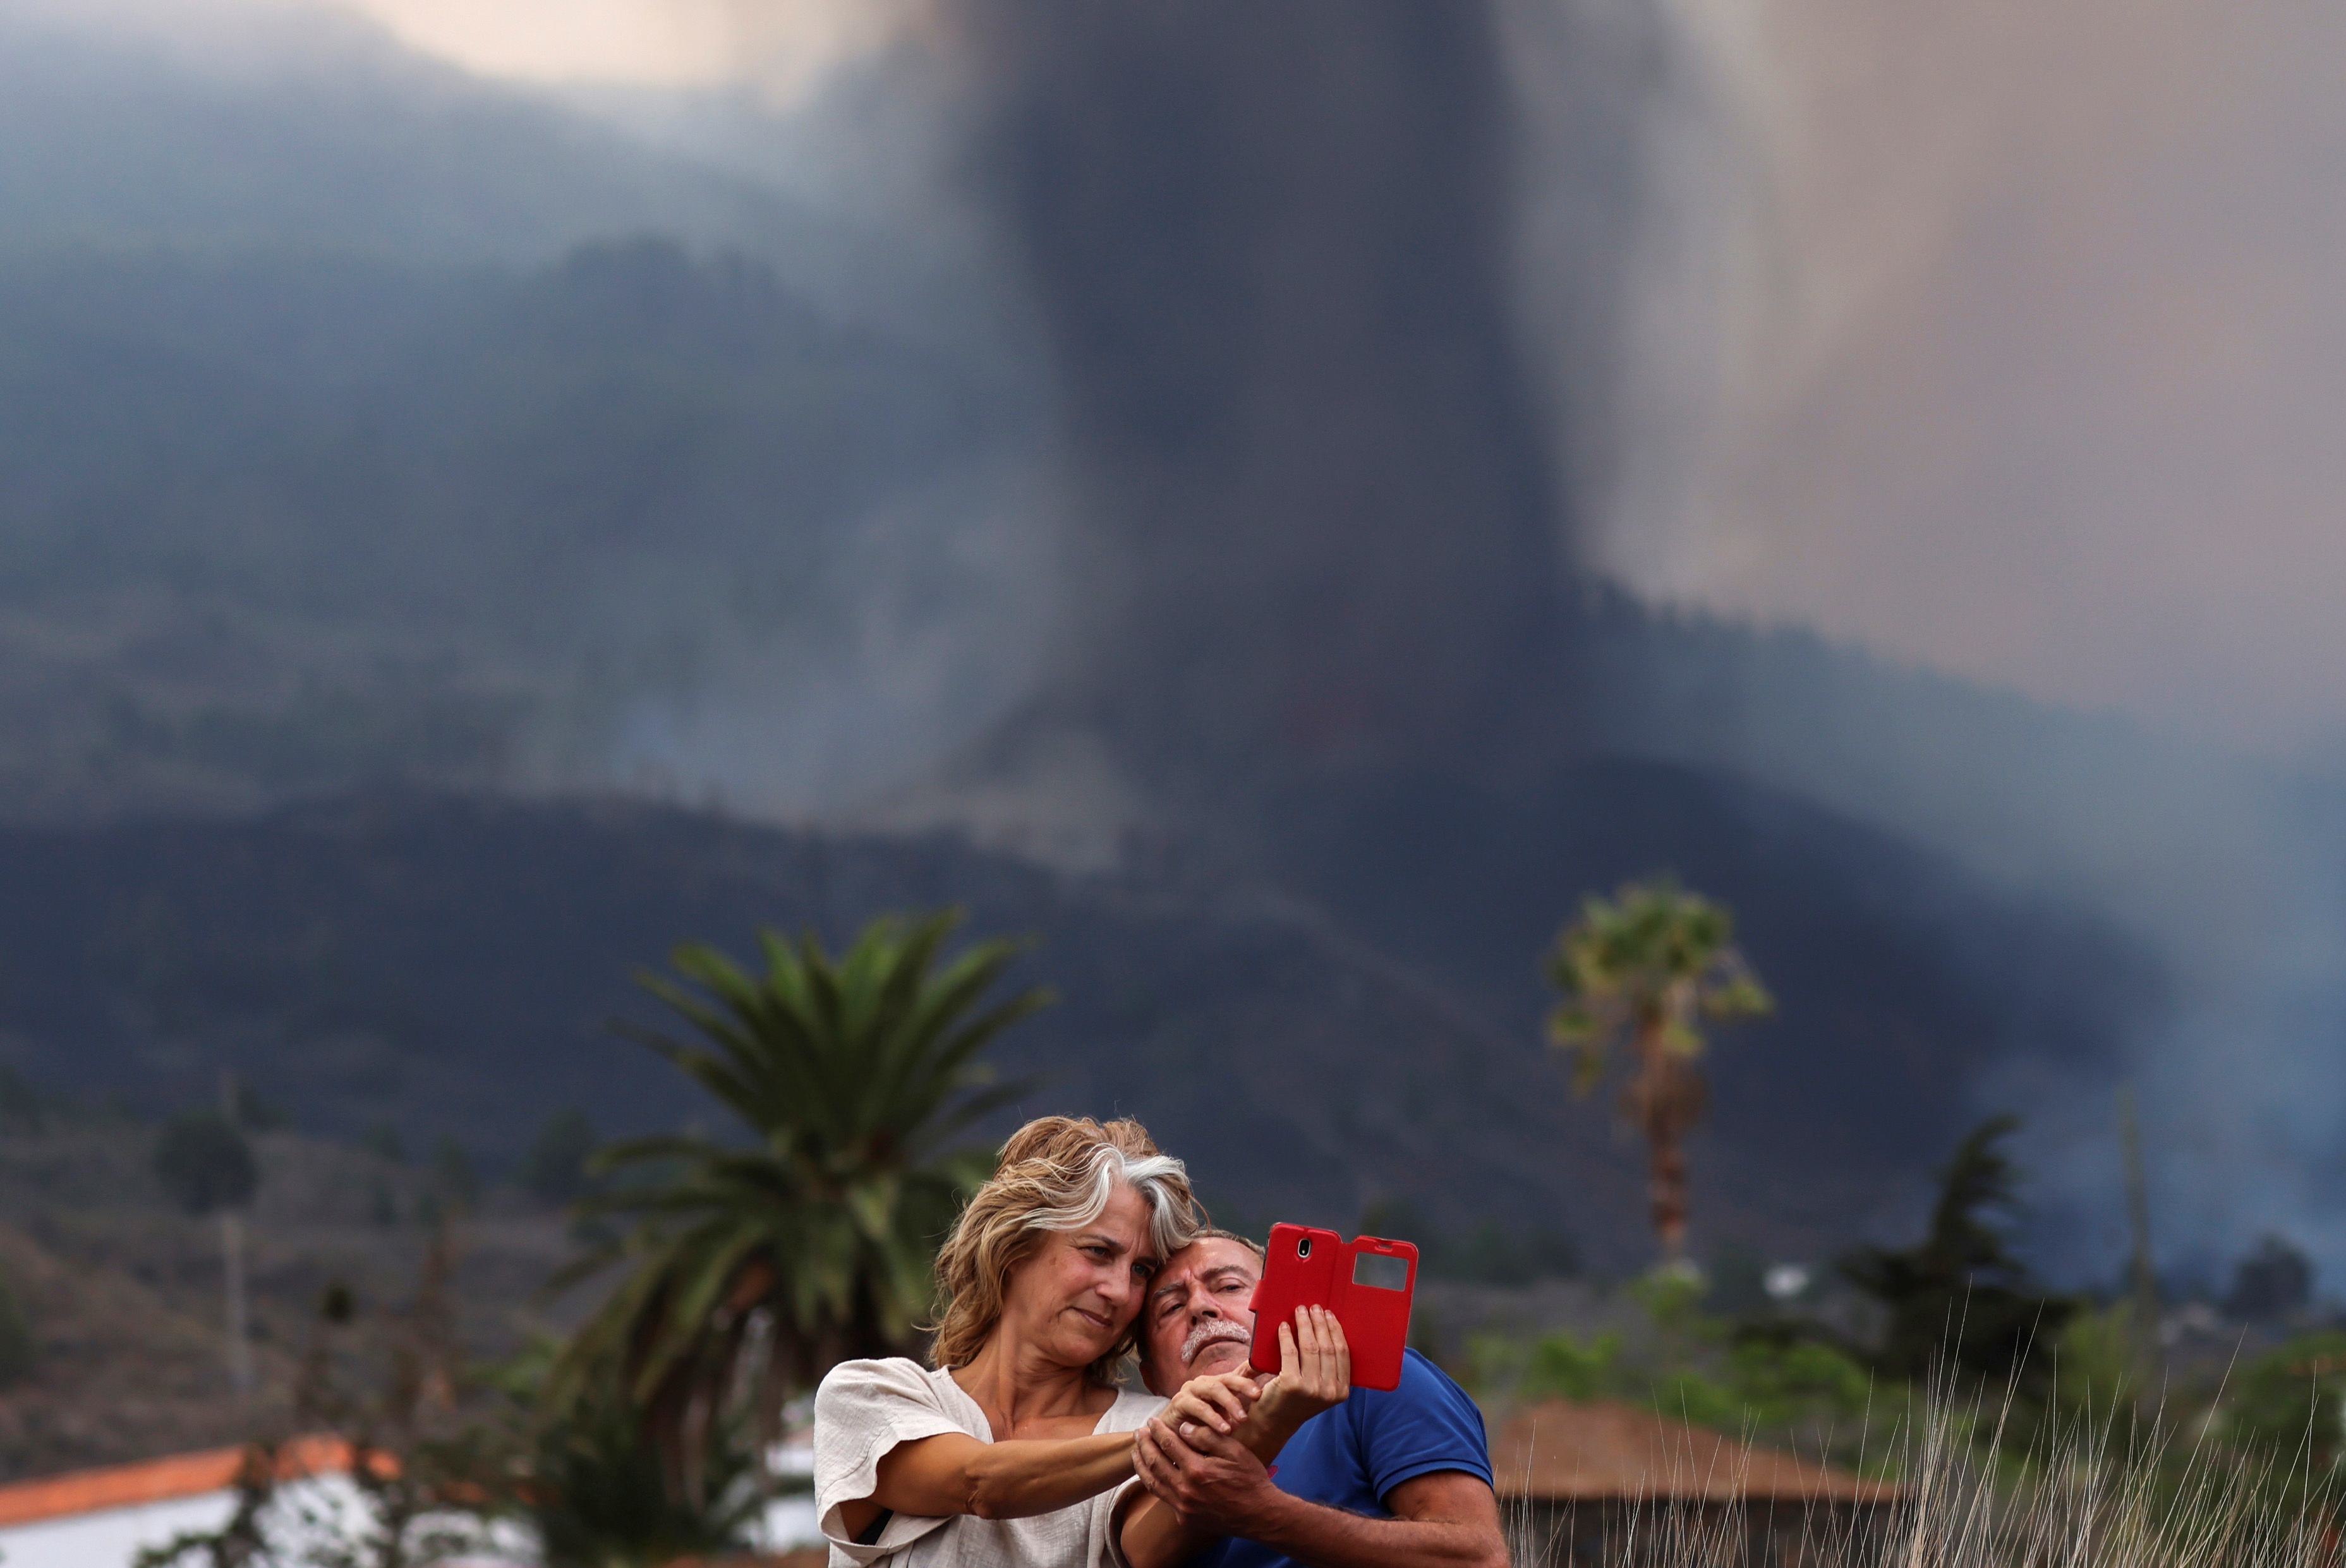 A couple takes a selfie in front of the erupting volcano, in Los Llanos de Aridane on the Canary Island of La Palma, Spain September 20, 2021. REUTERS/Nacho Doce